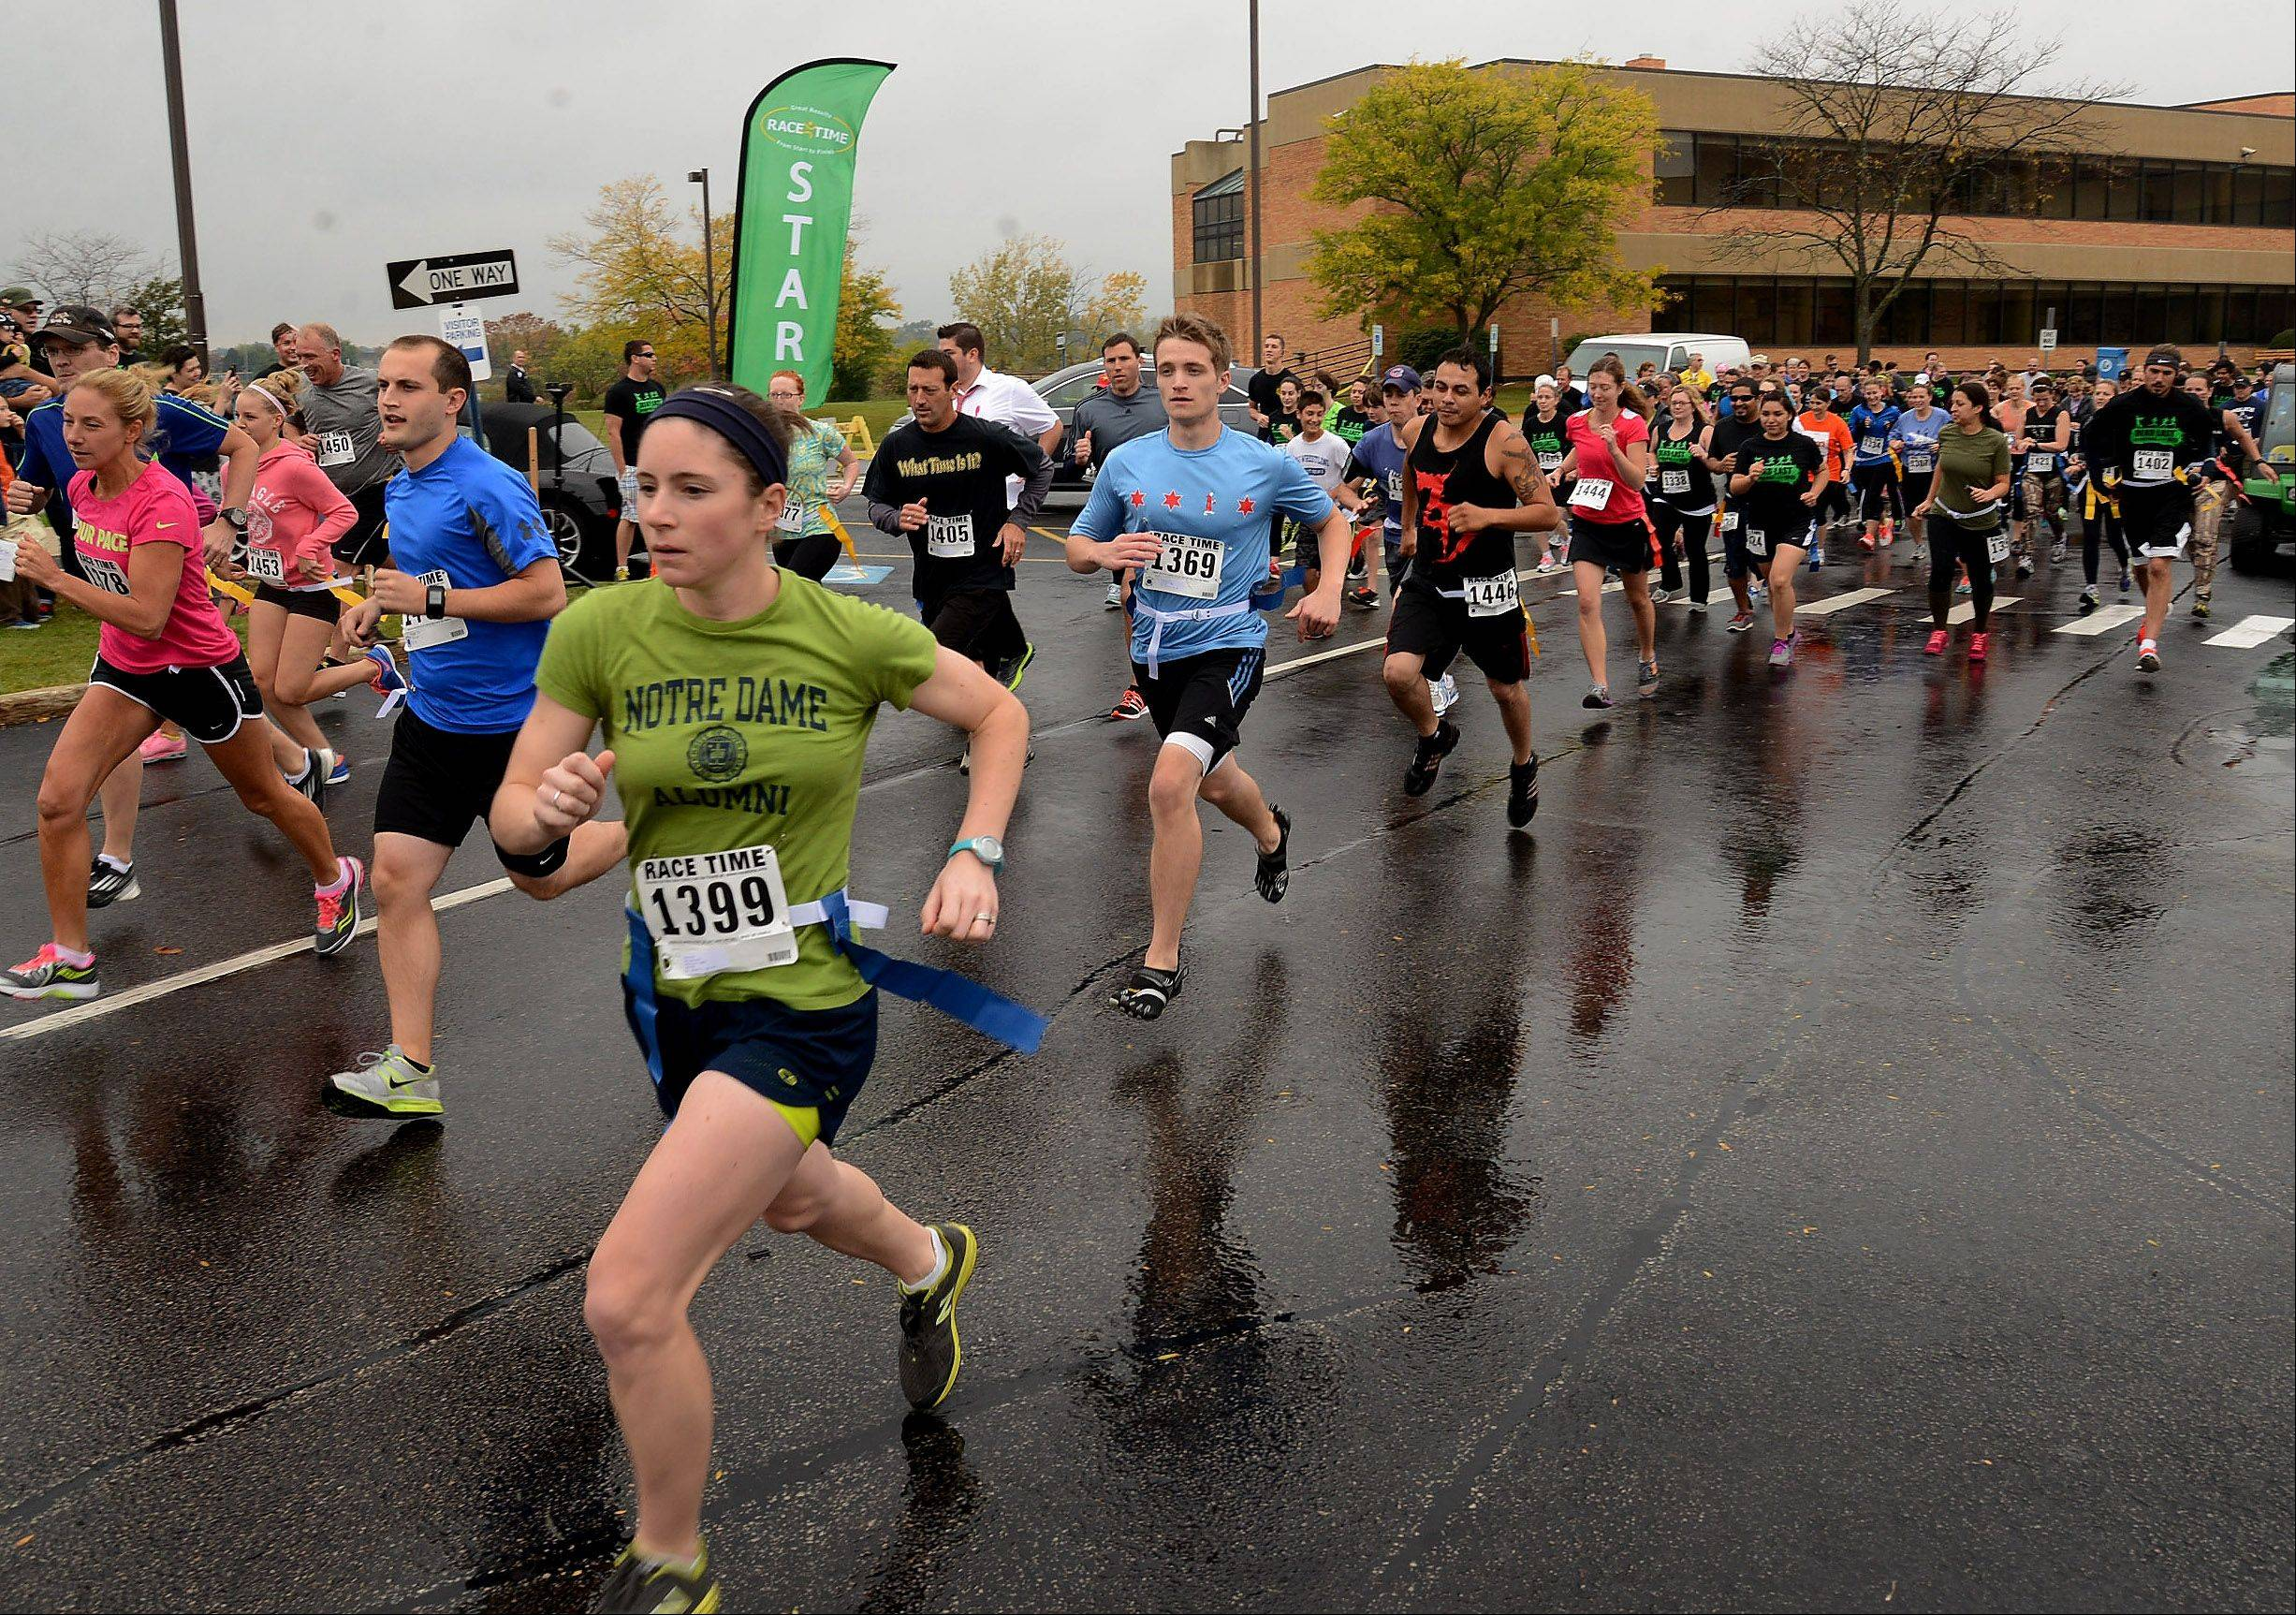 The start of Grayslake's inaugural zombie run on Saturday.